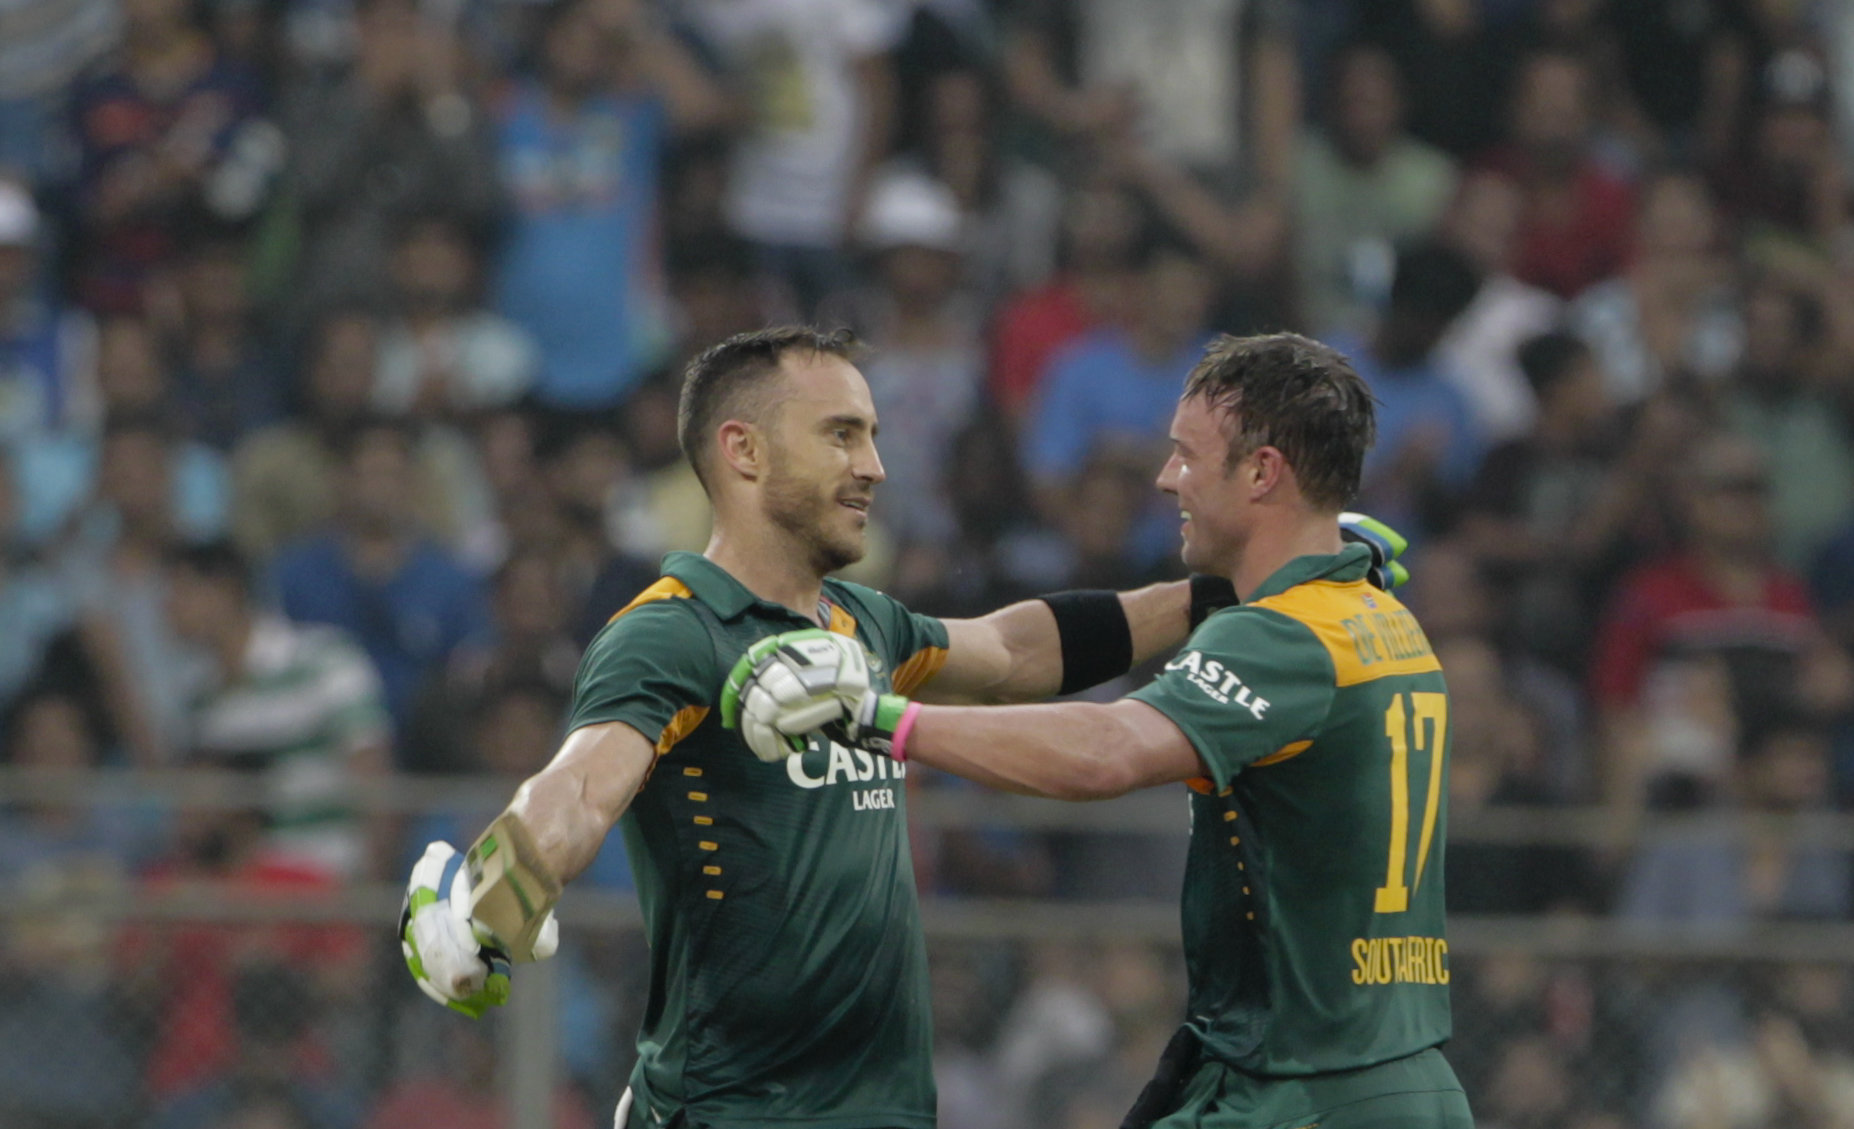 South Africa's Faf du Plessis (left) celebrates his hundred runs captain A.B. de Villiers during the final one-day international cricket match of a five-game series against India in Mumbai, India, Sunday, October 25, 2015. Photo: AP